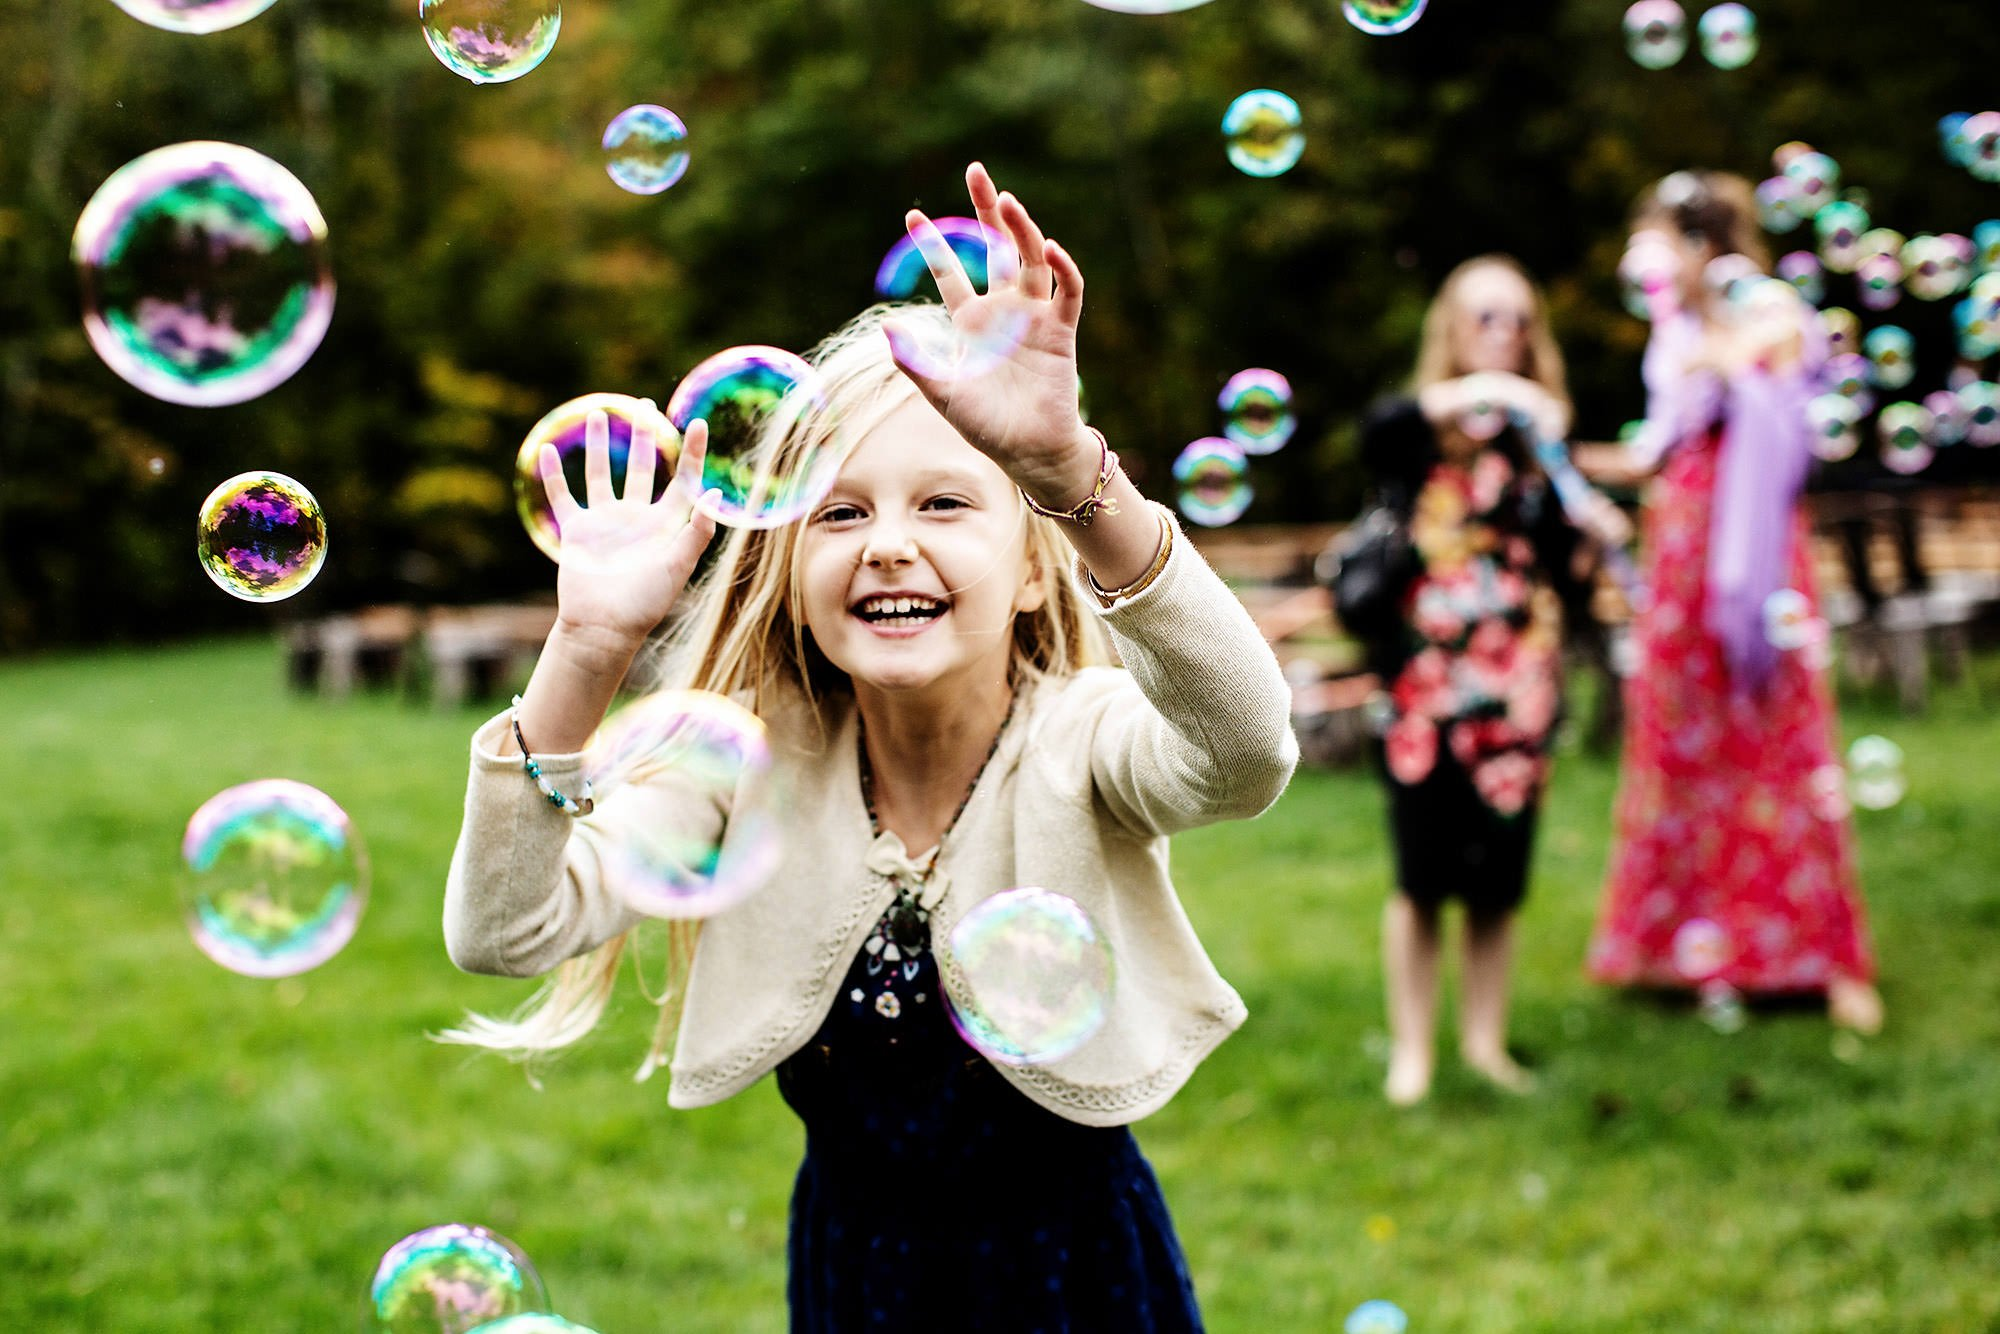 A girl runs through bubbles during cocktail hour during this Mad River Barn wedding.